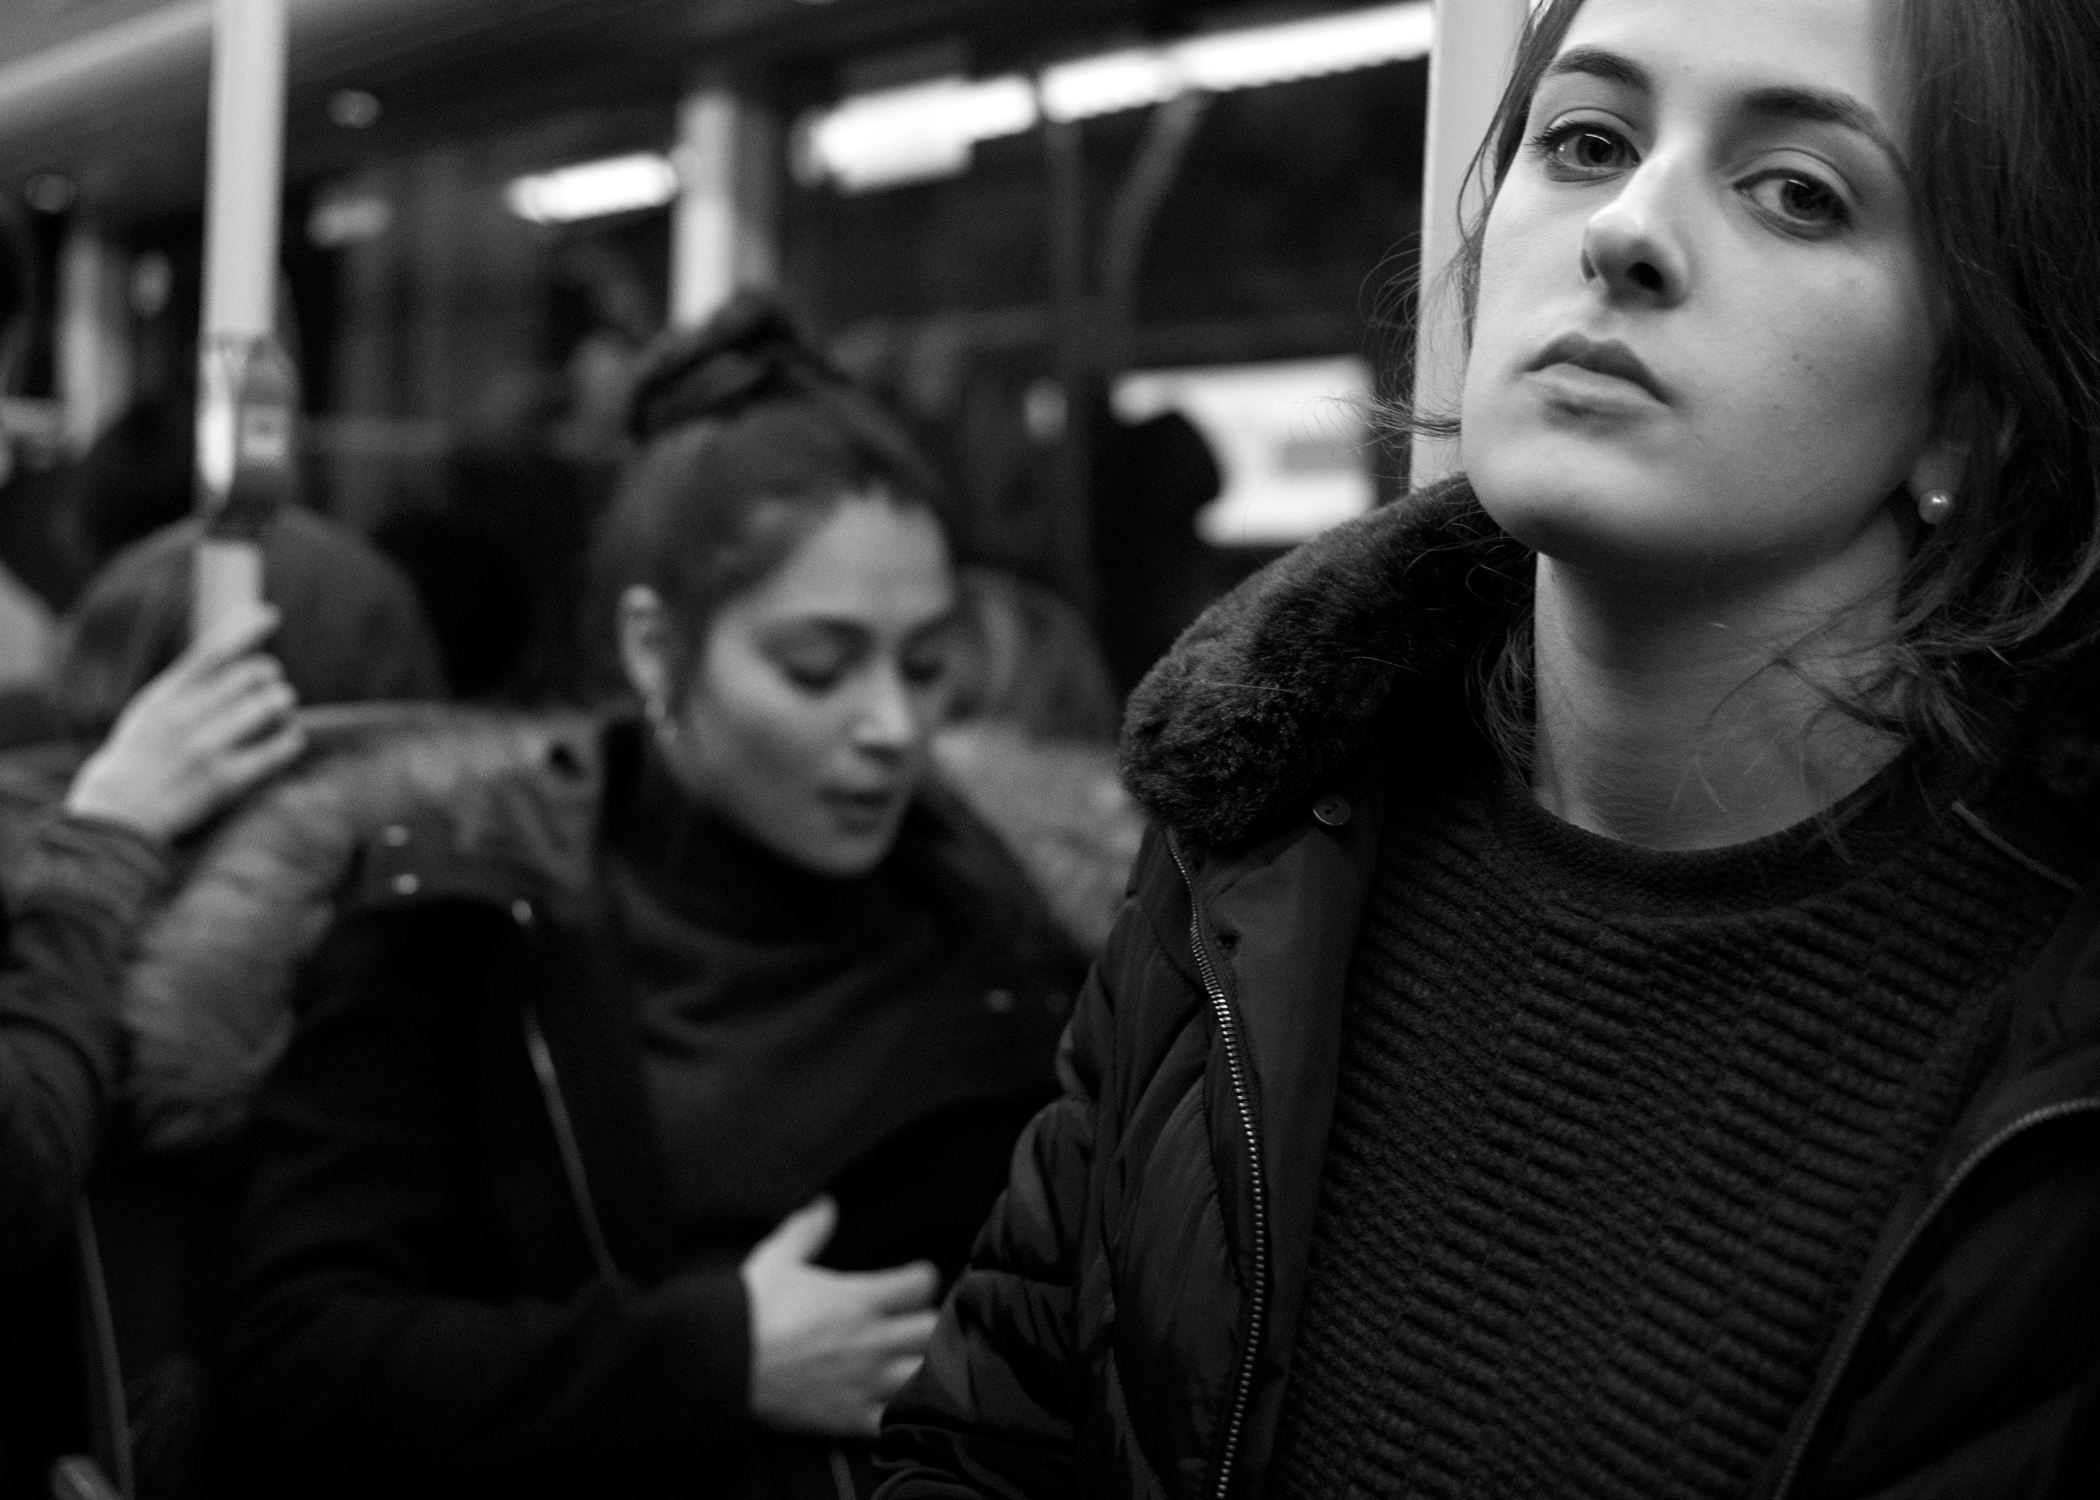 On the Subway in B&W. Photo by @the_human_journey_ Used with permission. Click picture for a larger image.